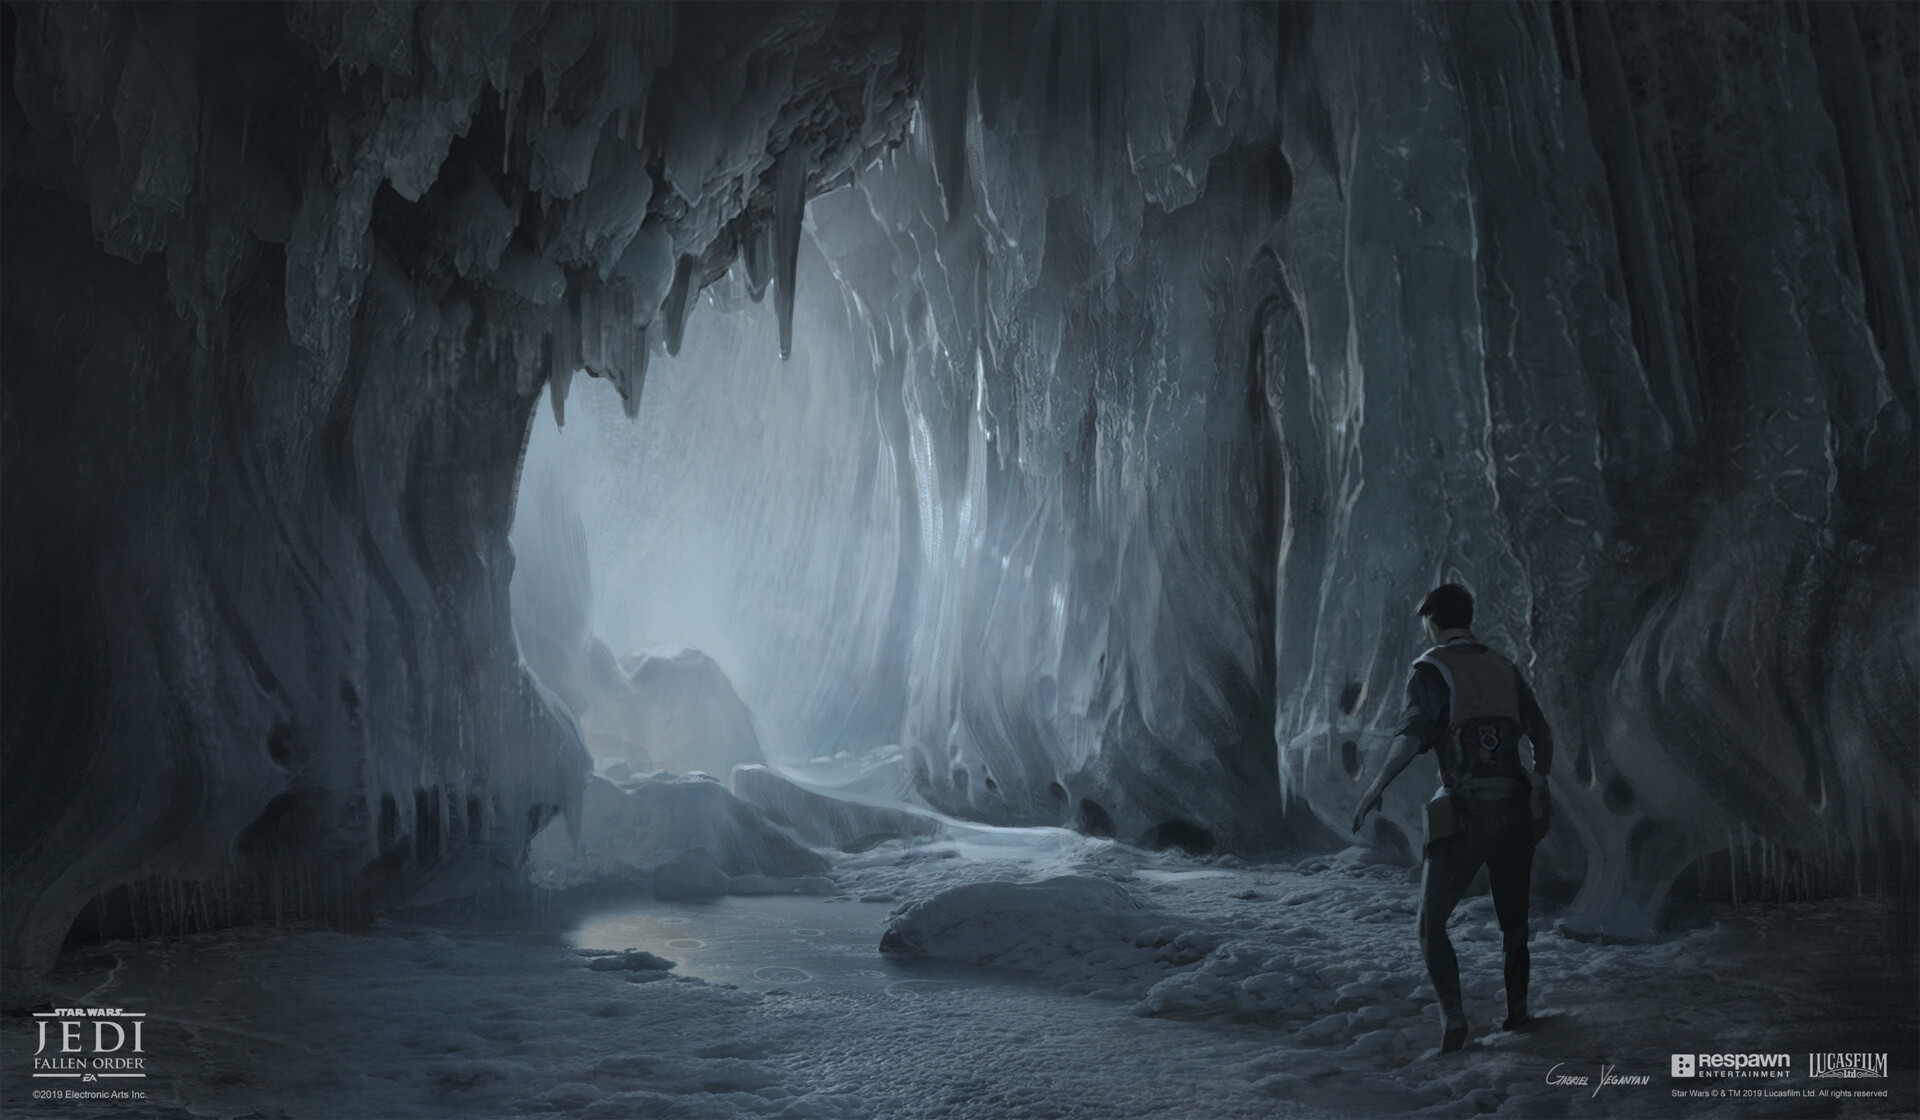 gabriel-yeganyan-ice-caves-corridor-copy